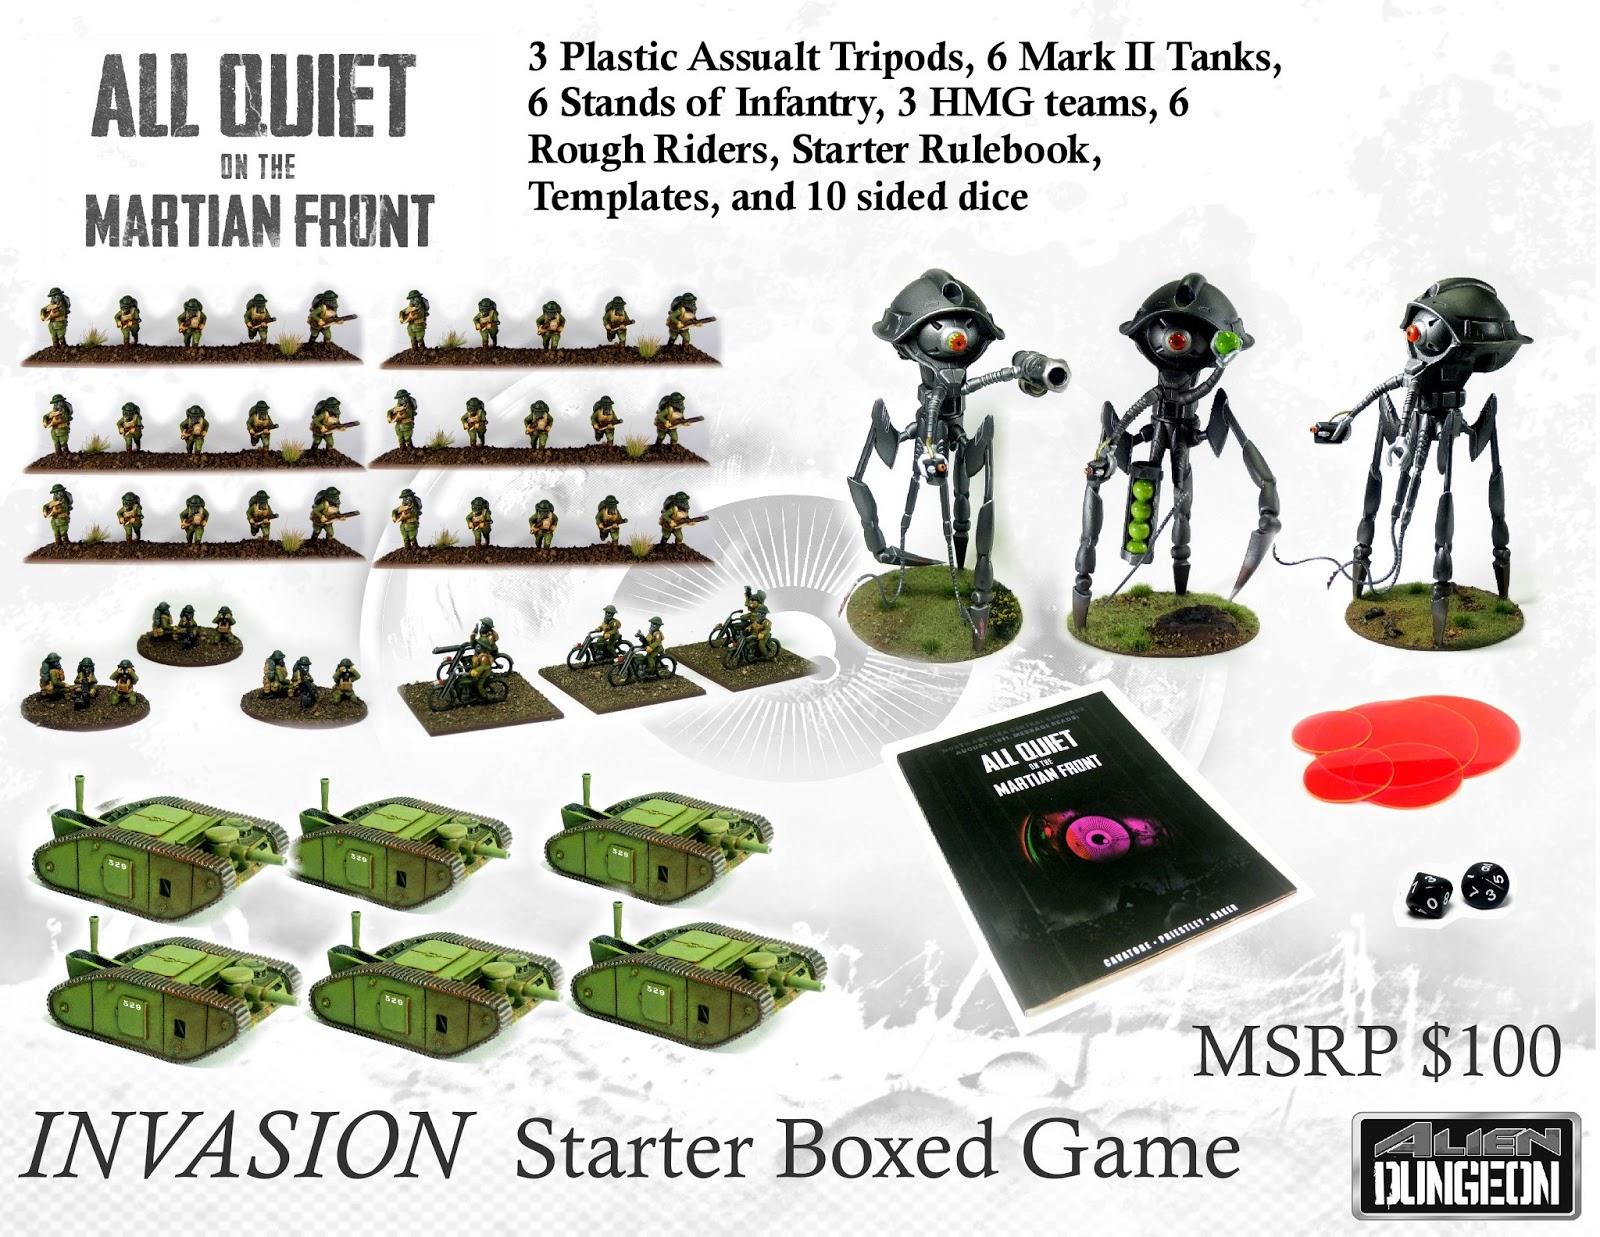 Aqmf vsf and 15 mm science fiction gaming: aqmf only on ebay